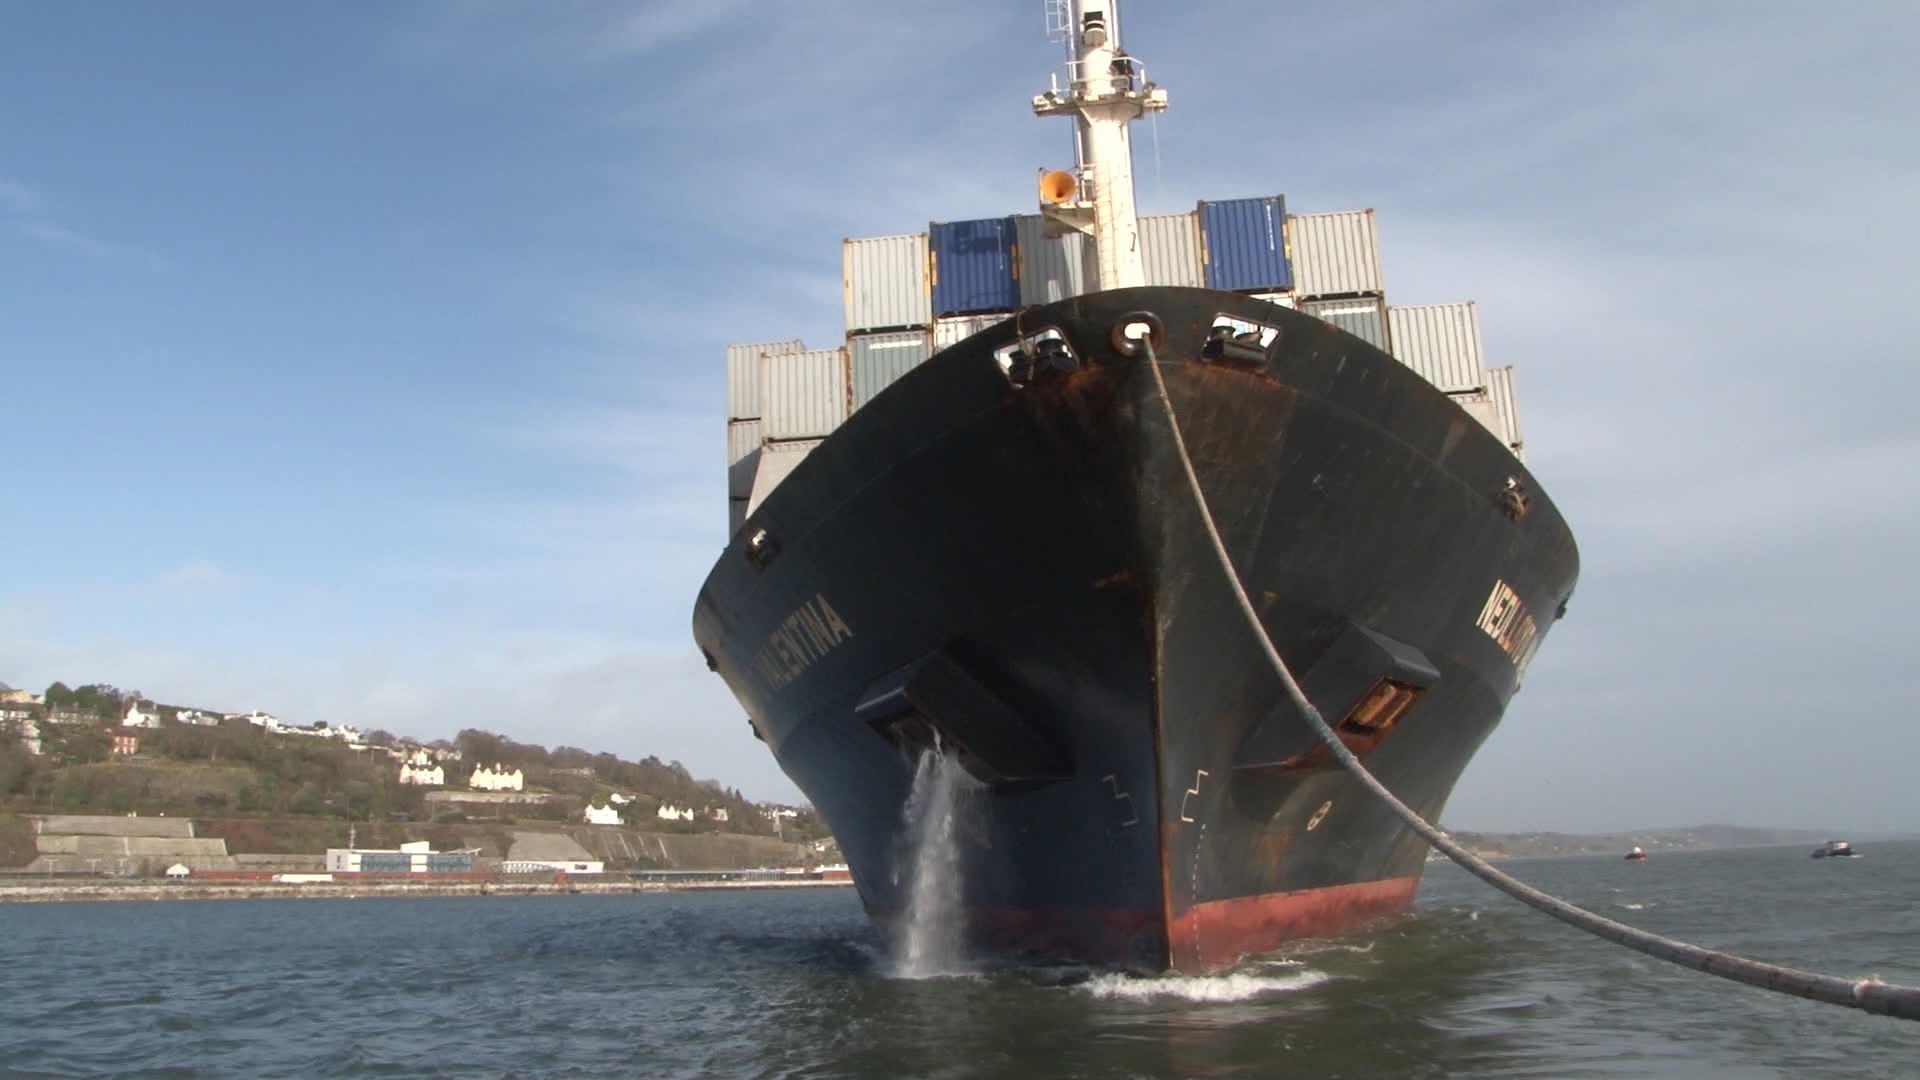 TV3 airs fly-on-the-wall series about Cork's Mega Port.